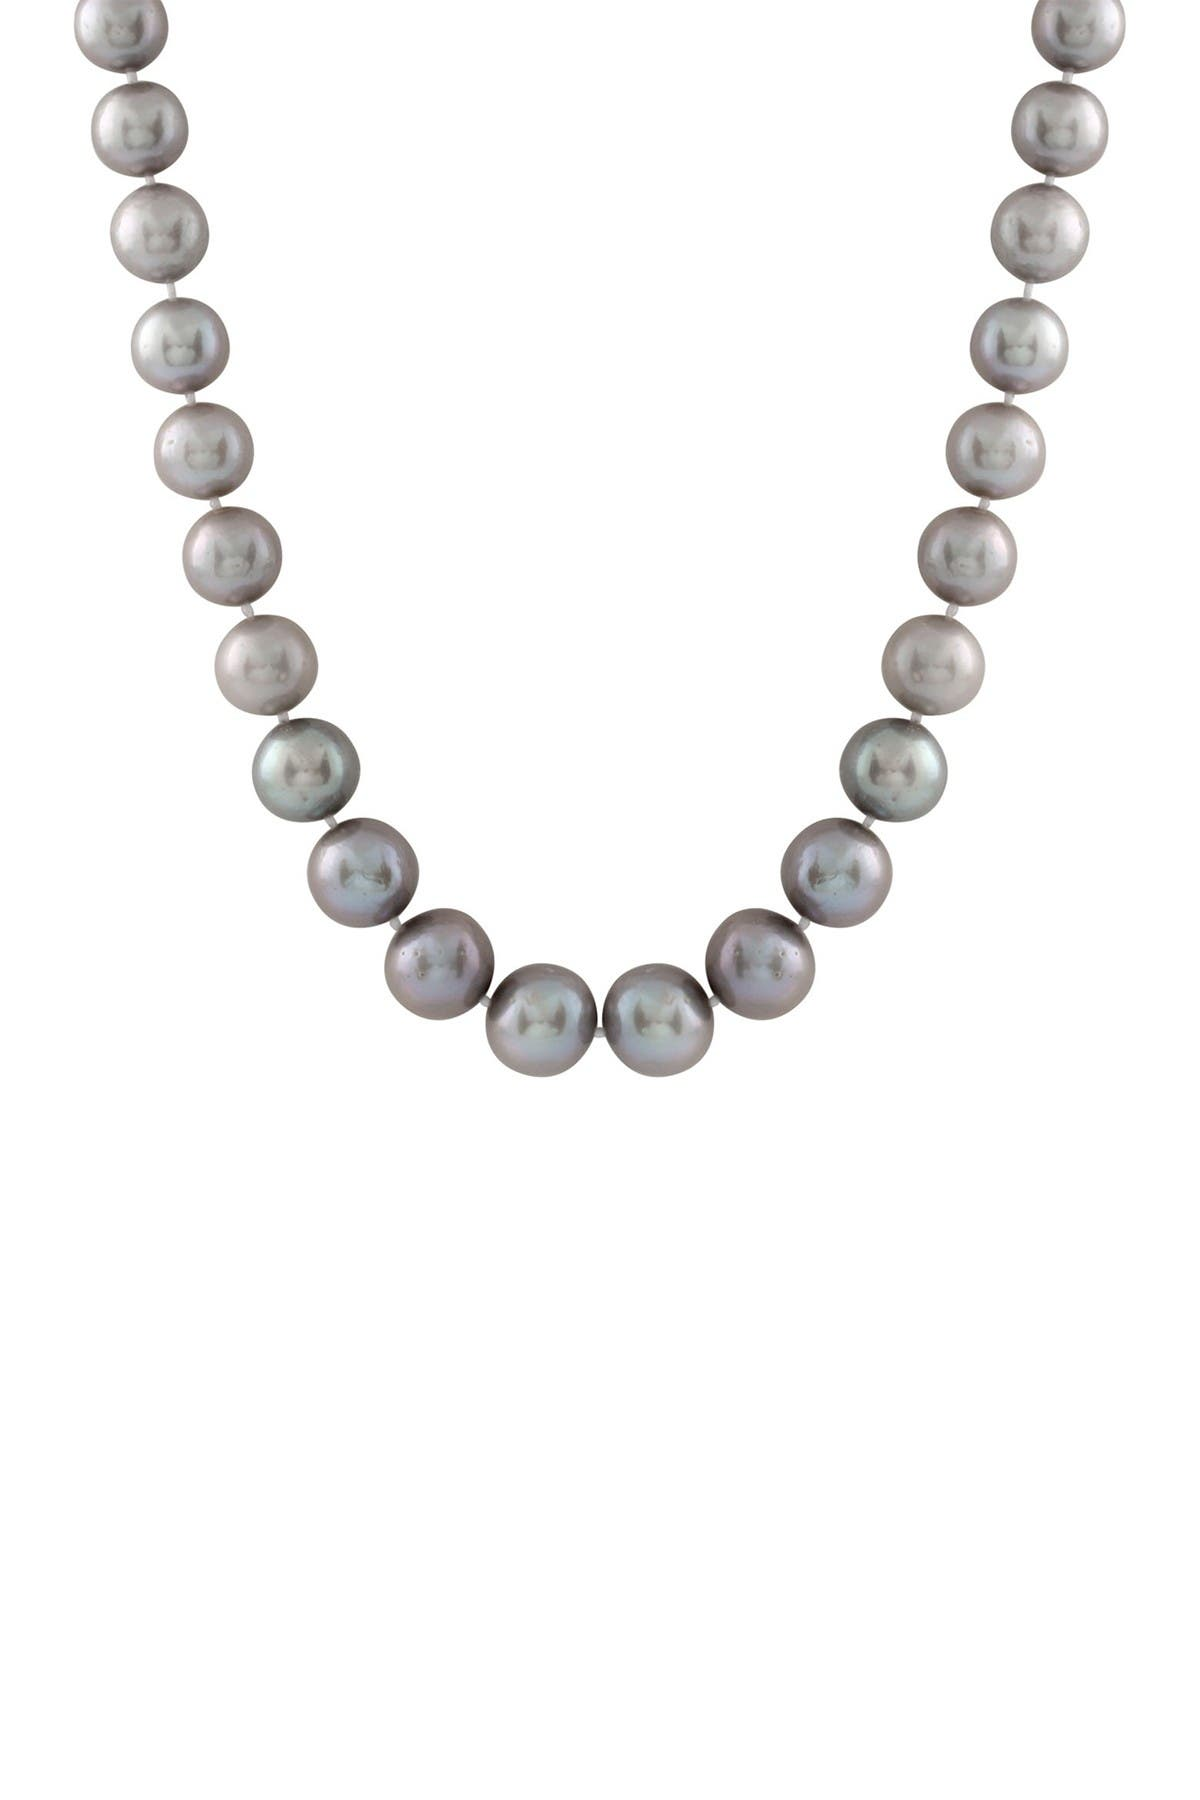 Image of Splendid Pearls 14K Yellow Gold 9-10mm Grey Freshwater Pearl Necklace